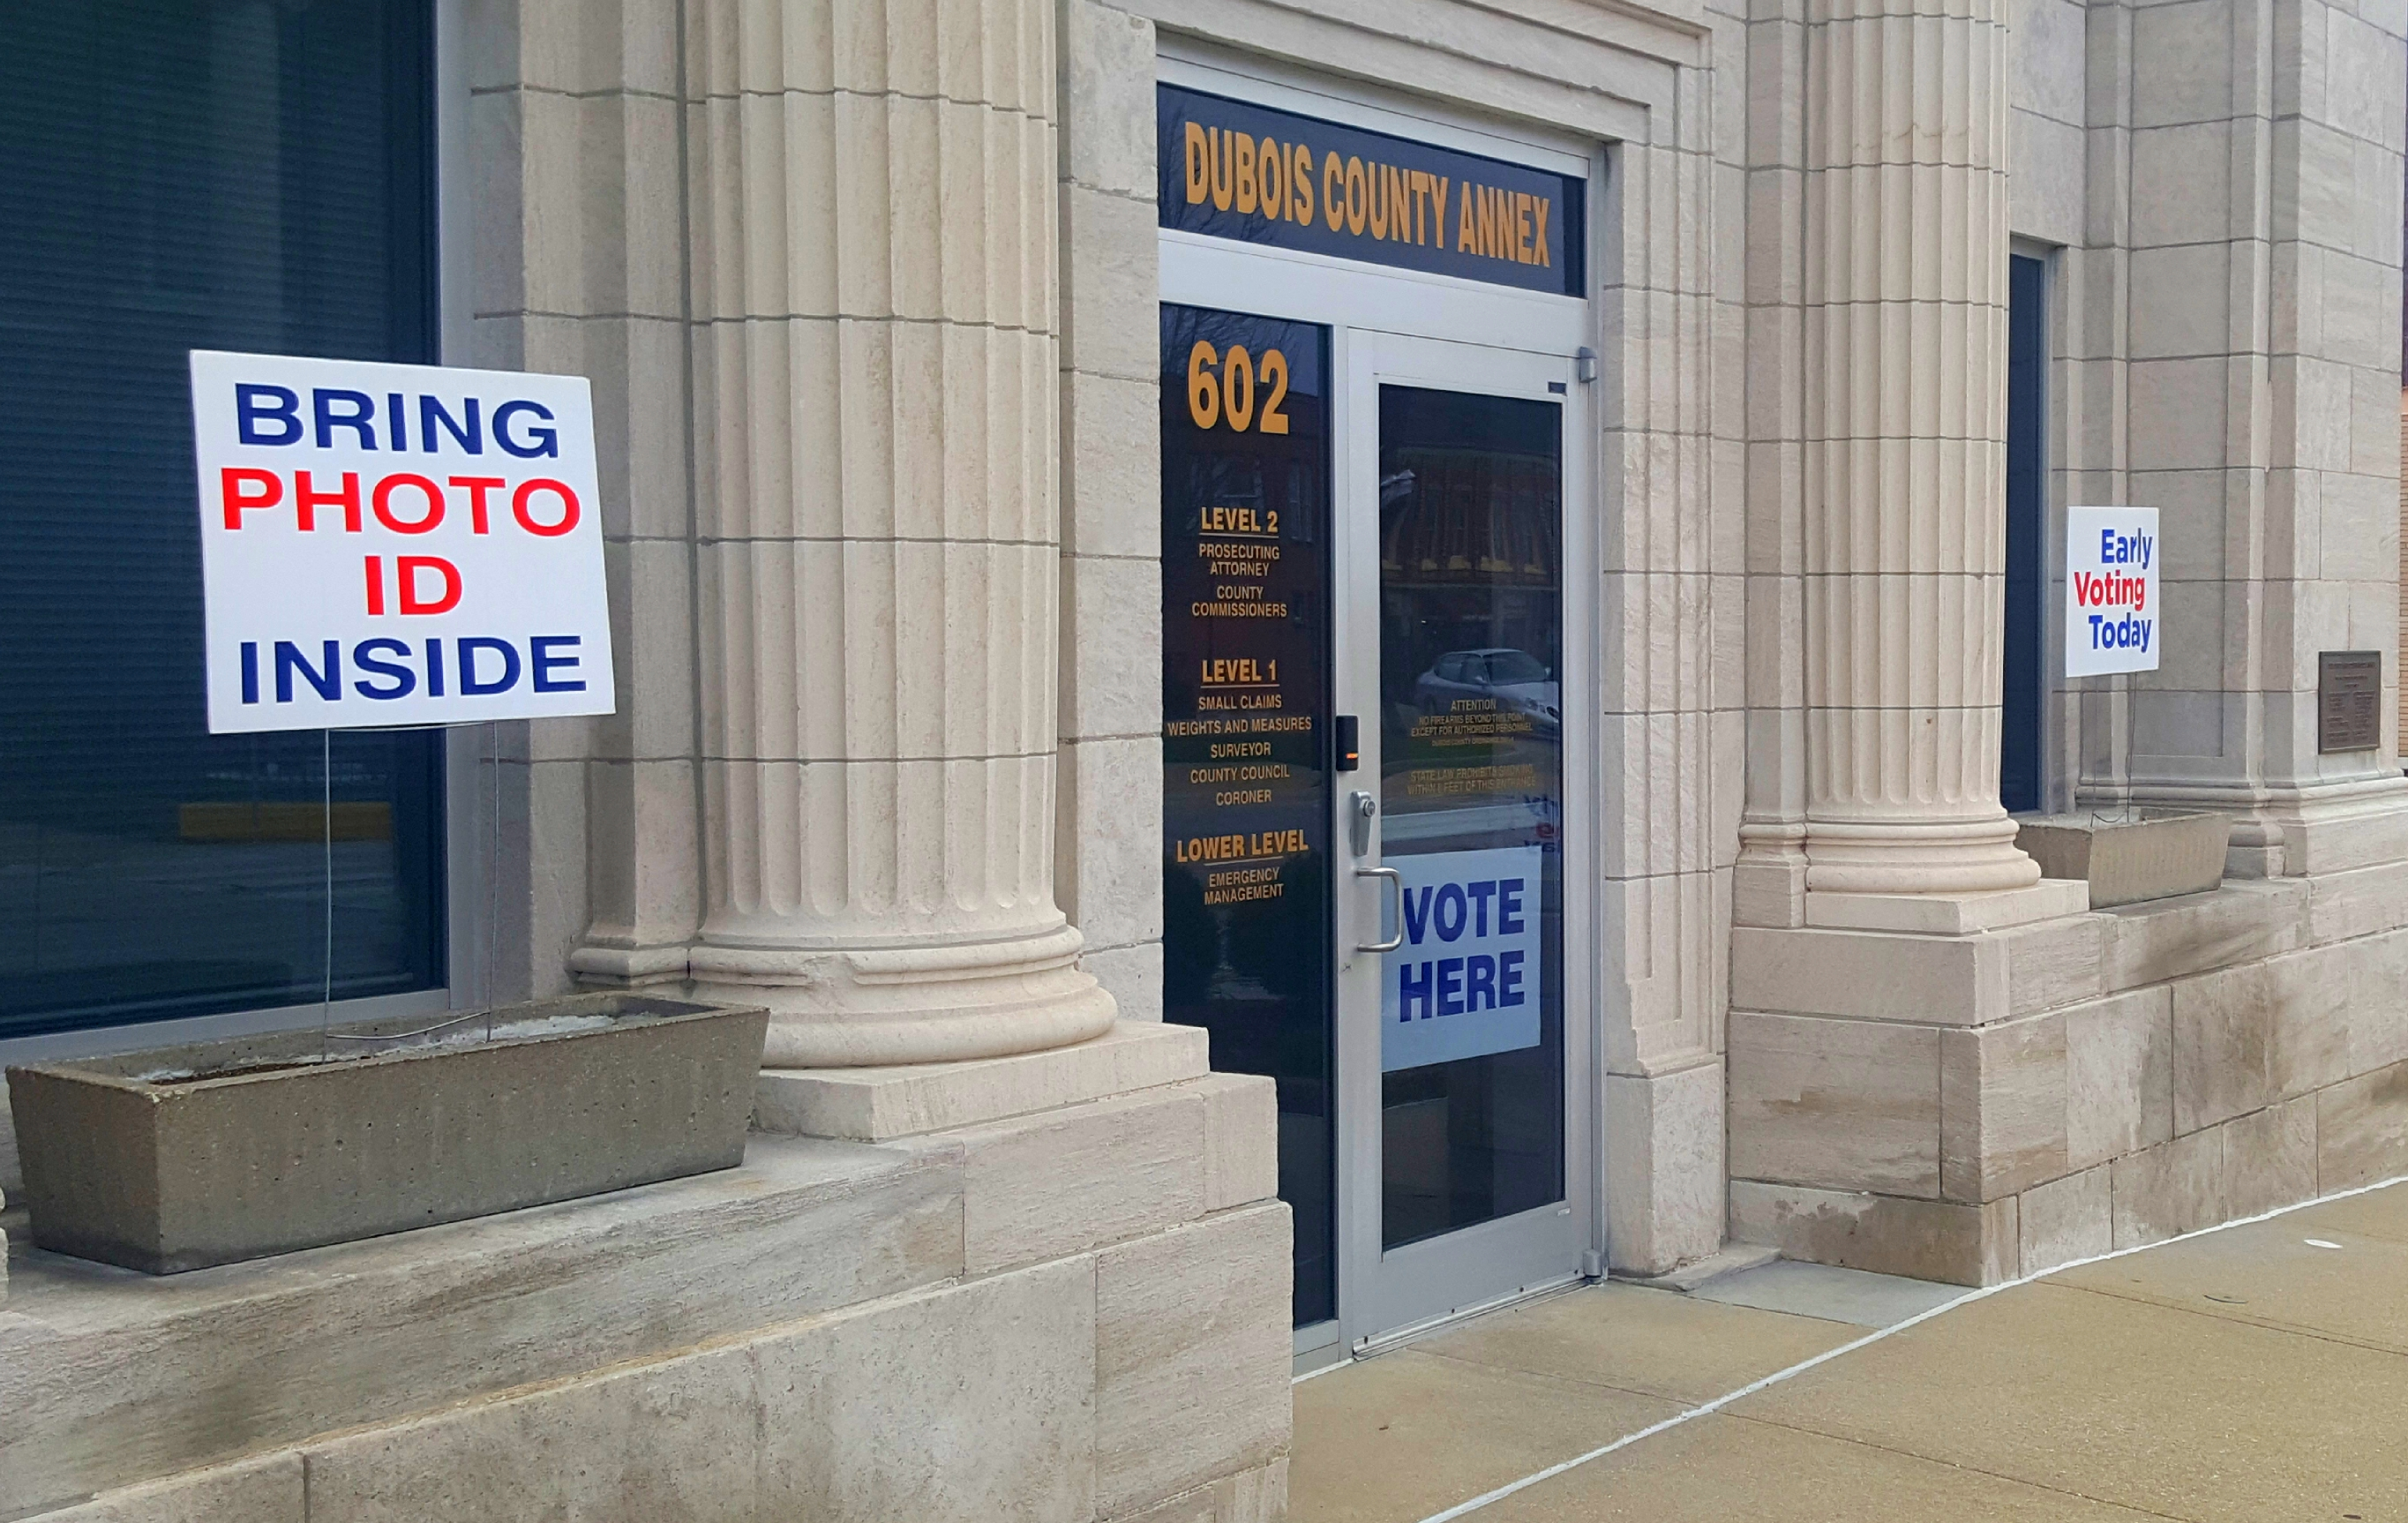 Only 9 Percent of Dubois County Voters Turned Out For Tuesday's Primary